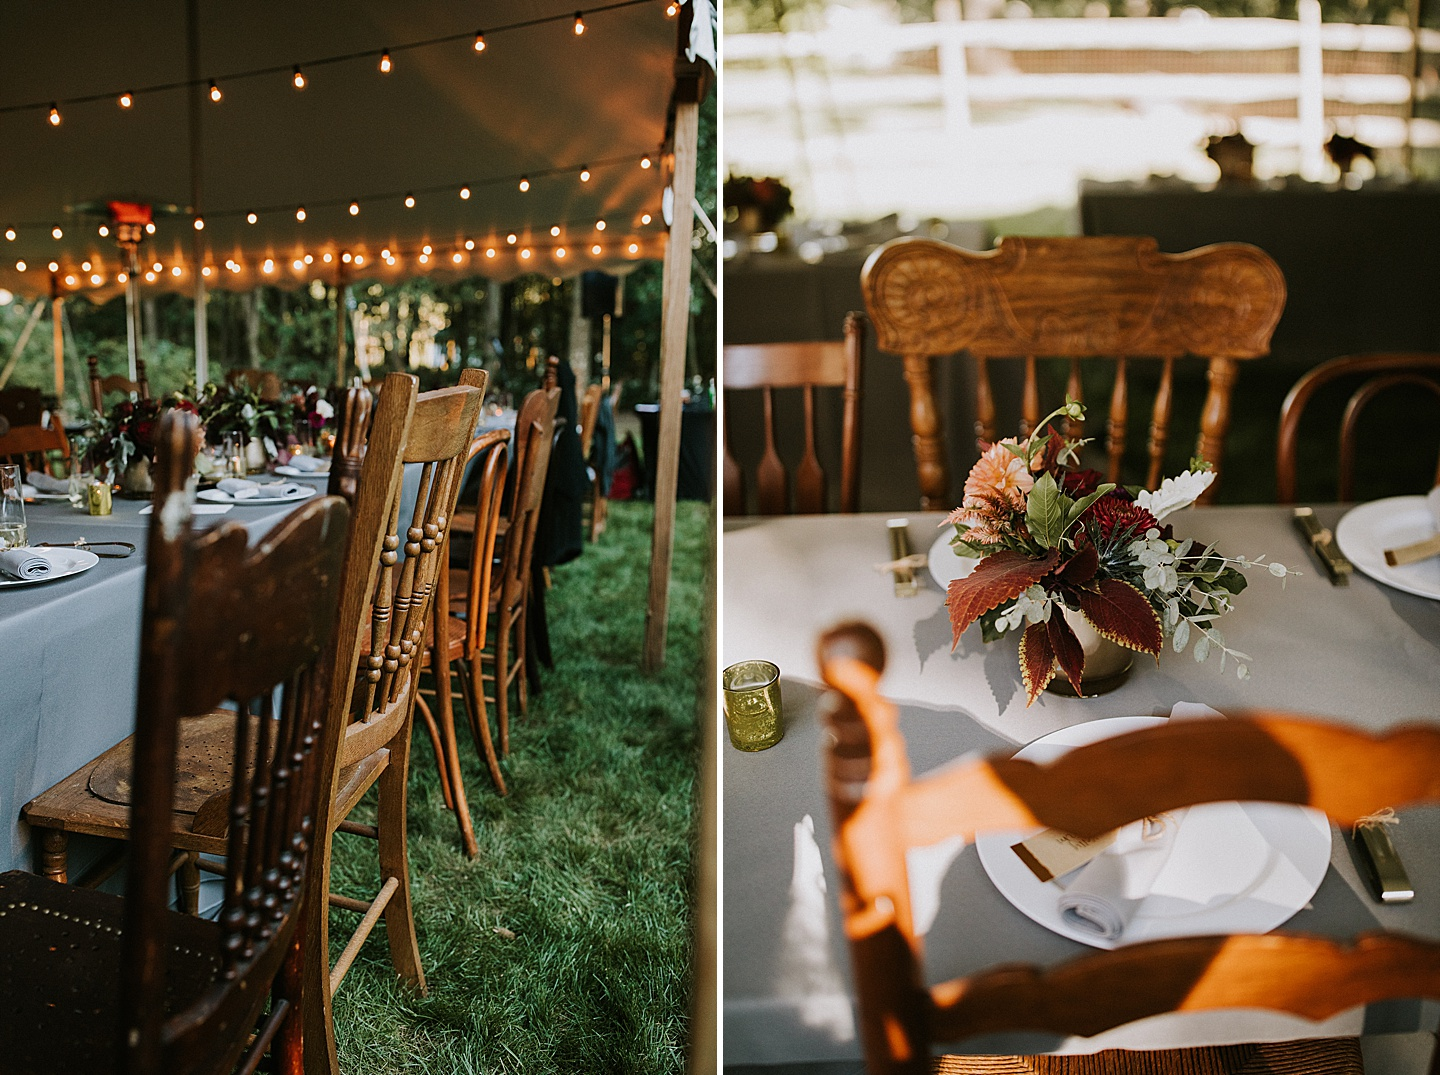 Antique chairs used at wedding reception